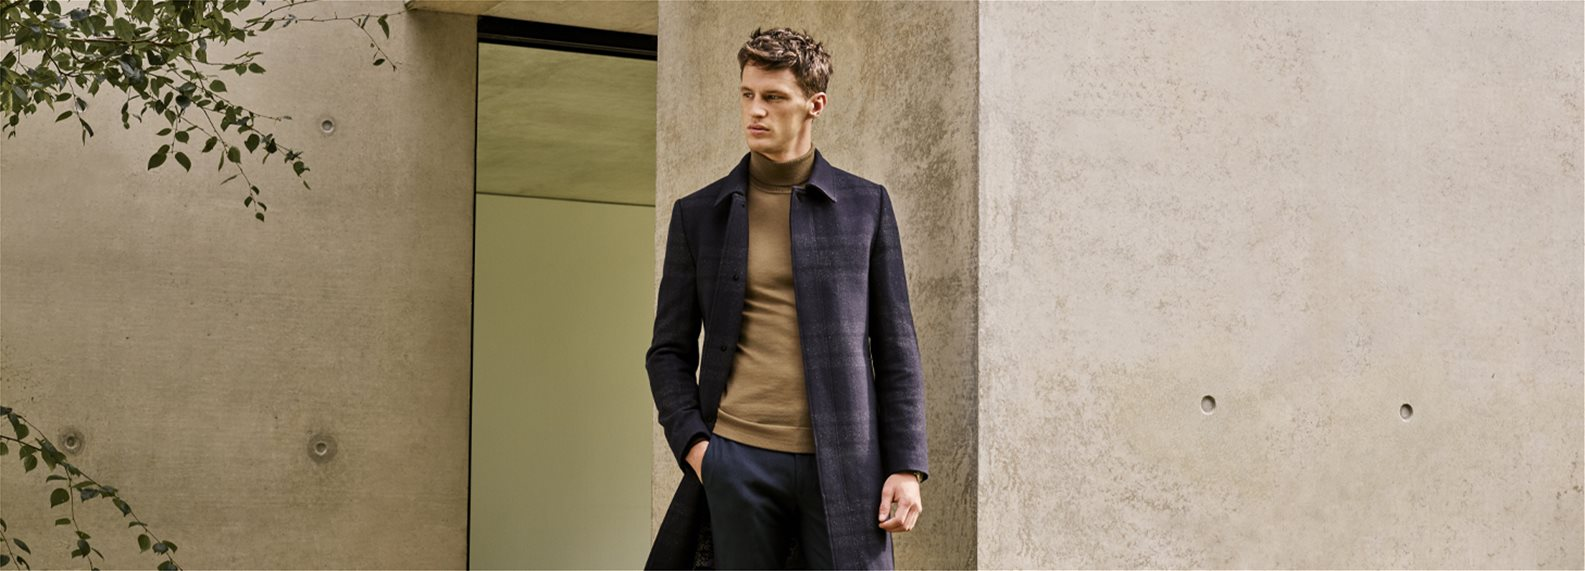 TED BAKER: MEN COLLECTION image